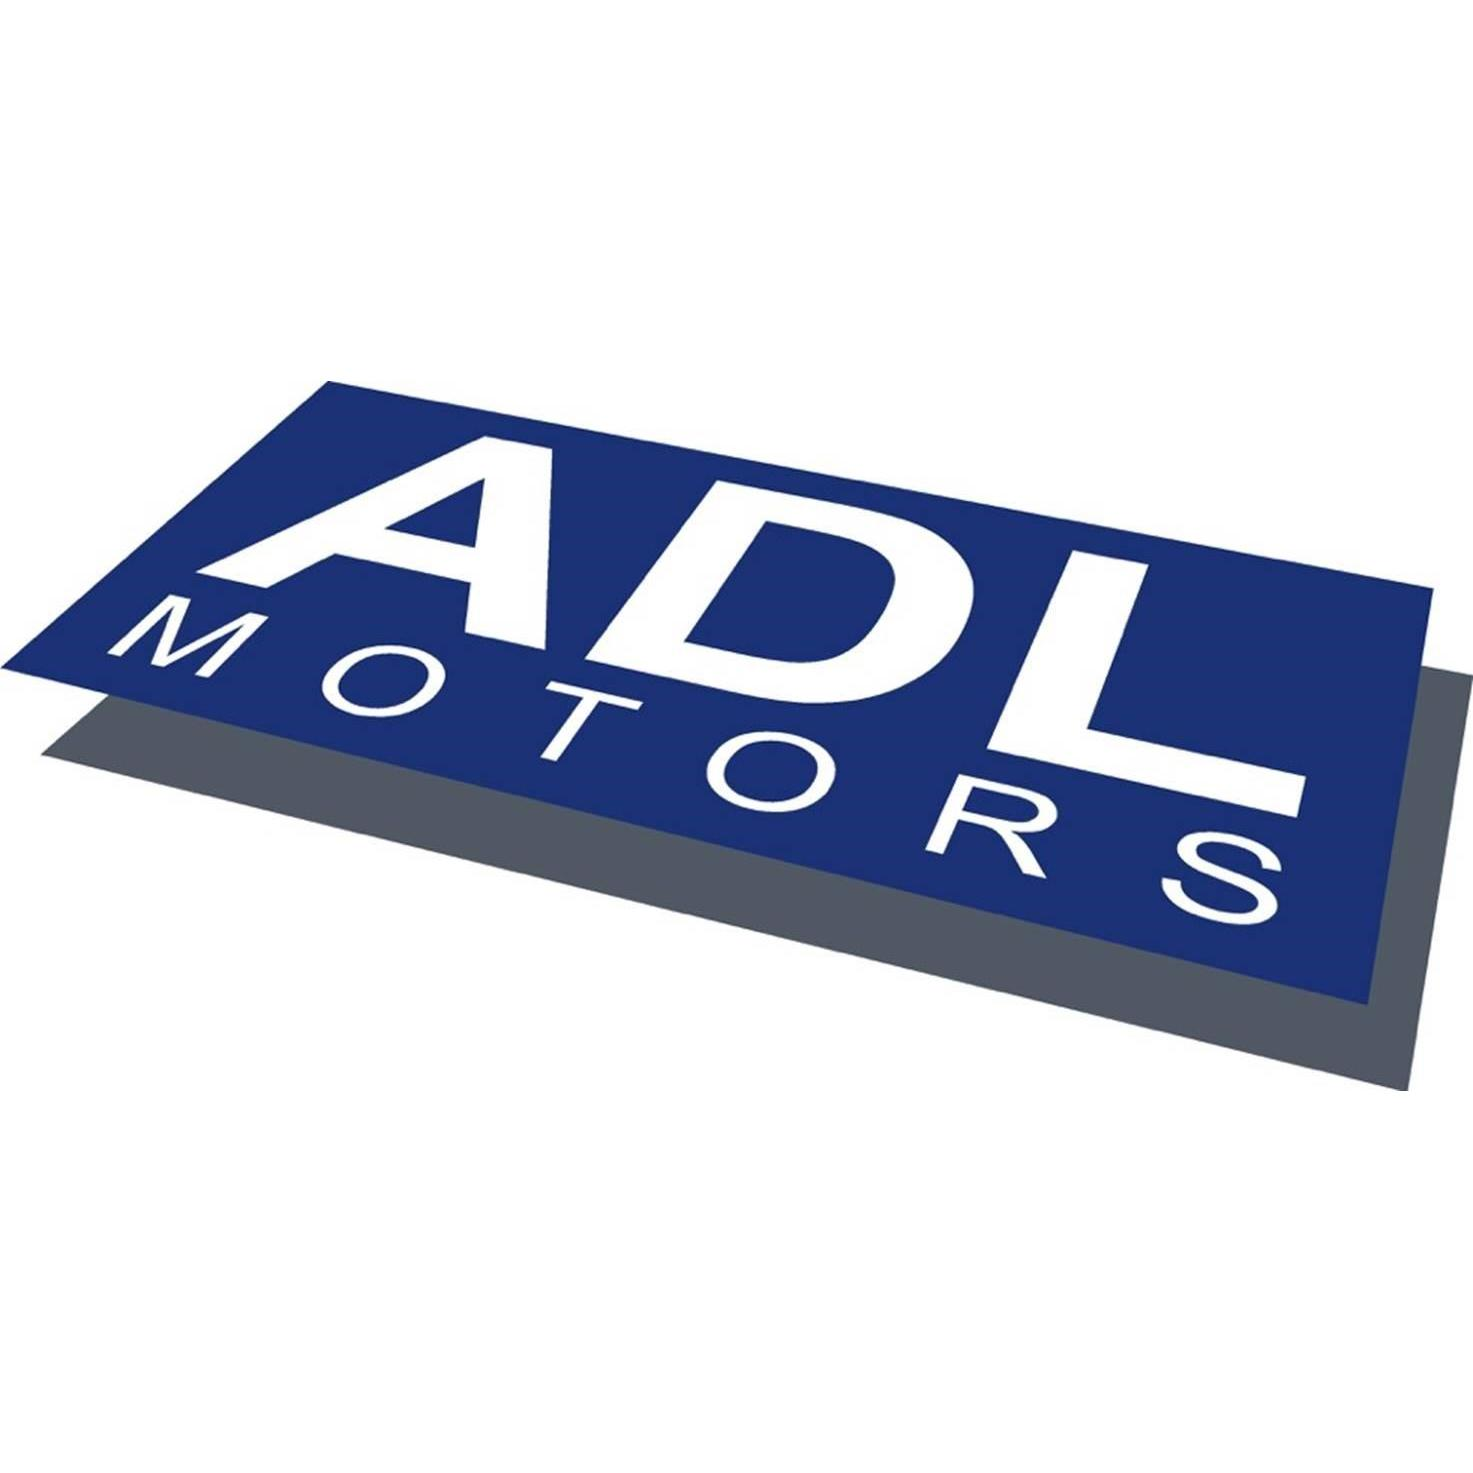 Adl Motors Ltd  Motor Vehicle Mechanics In Chertsey Kt16. Addiction Recovery Program Full Metal Backup. Workflow Document Template Acting In College. Top Rated Home Security Bed Bug Inspection Nyc. Documenting Business Rules Template. Python Programming Test Business Admin Online. Bank Of America Mileage Card. Best Nursing School In Florida. Employment Attorney Pittsburgh